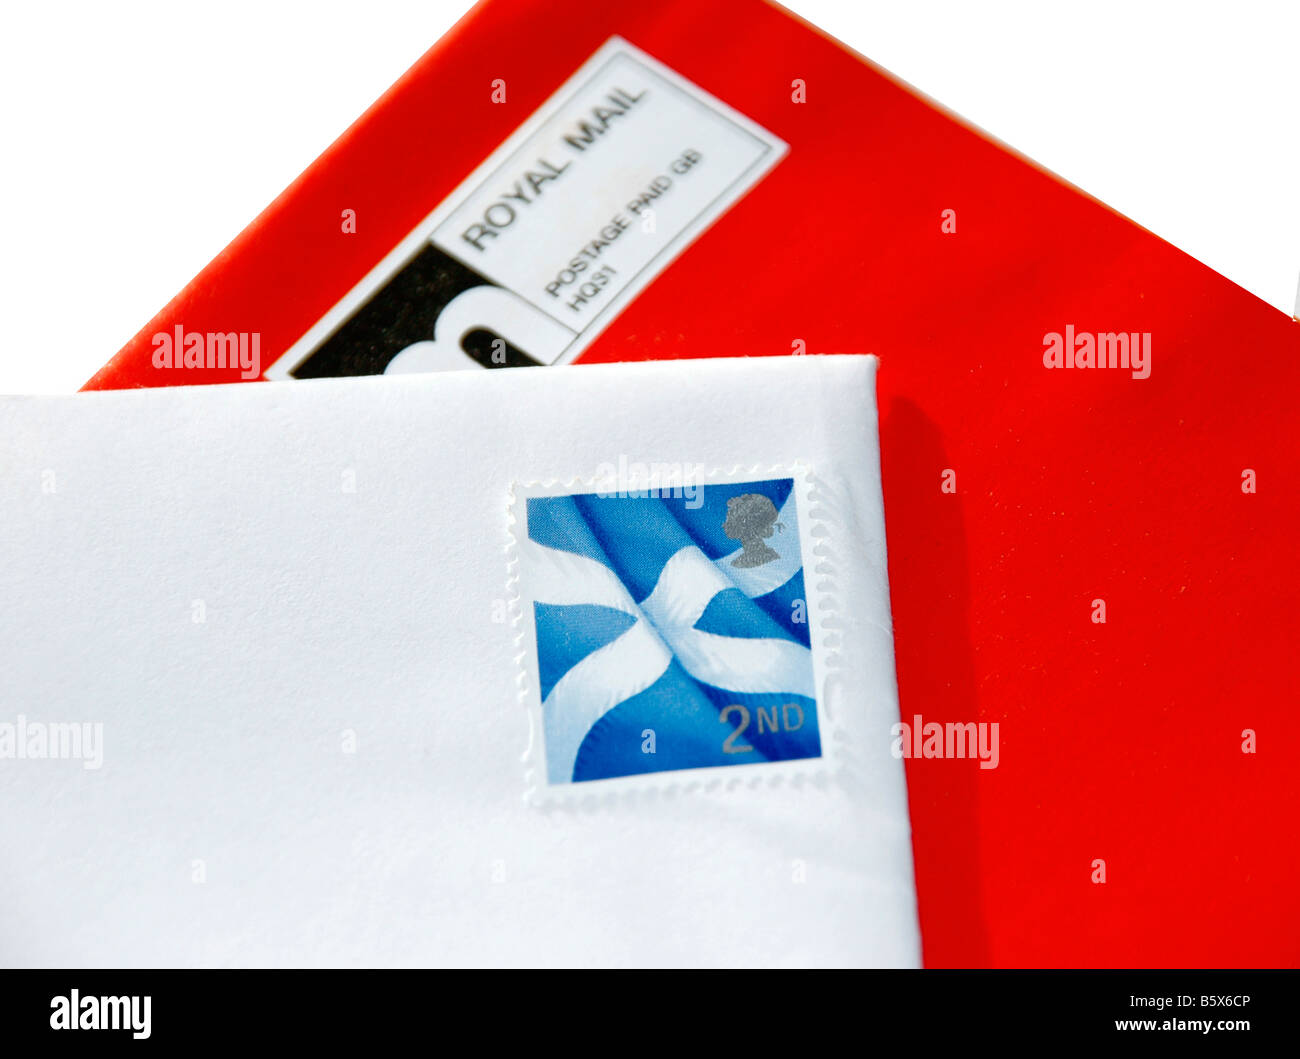 b87417b000a2 A red and white stamped envelope - depicting the scottish saltire flag. -  Stock Image